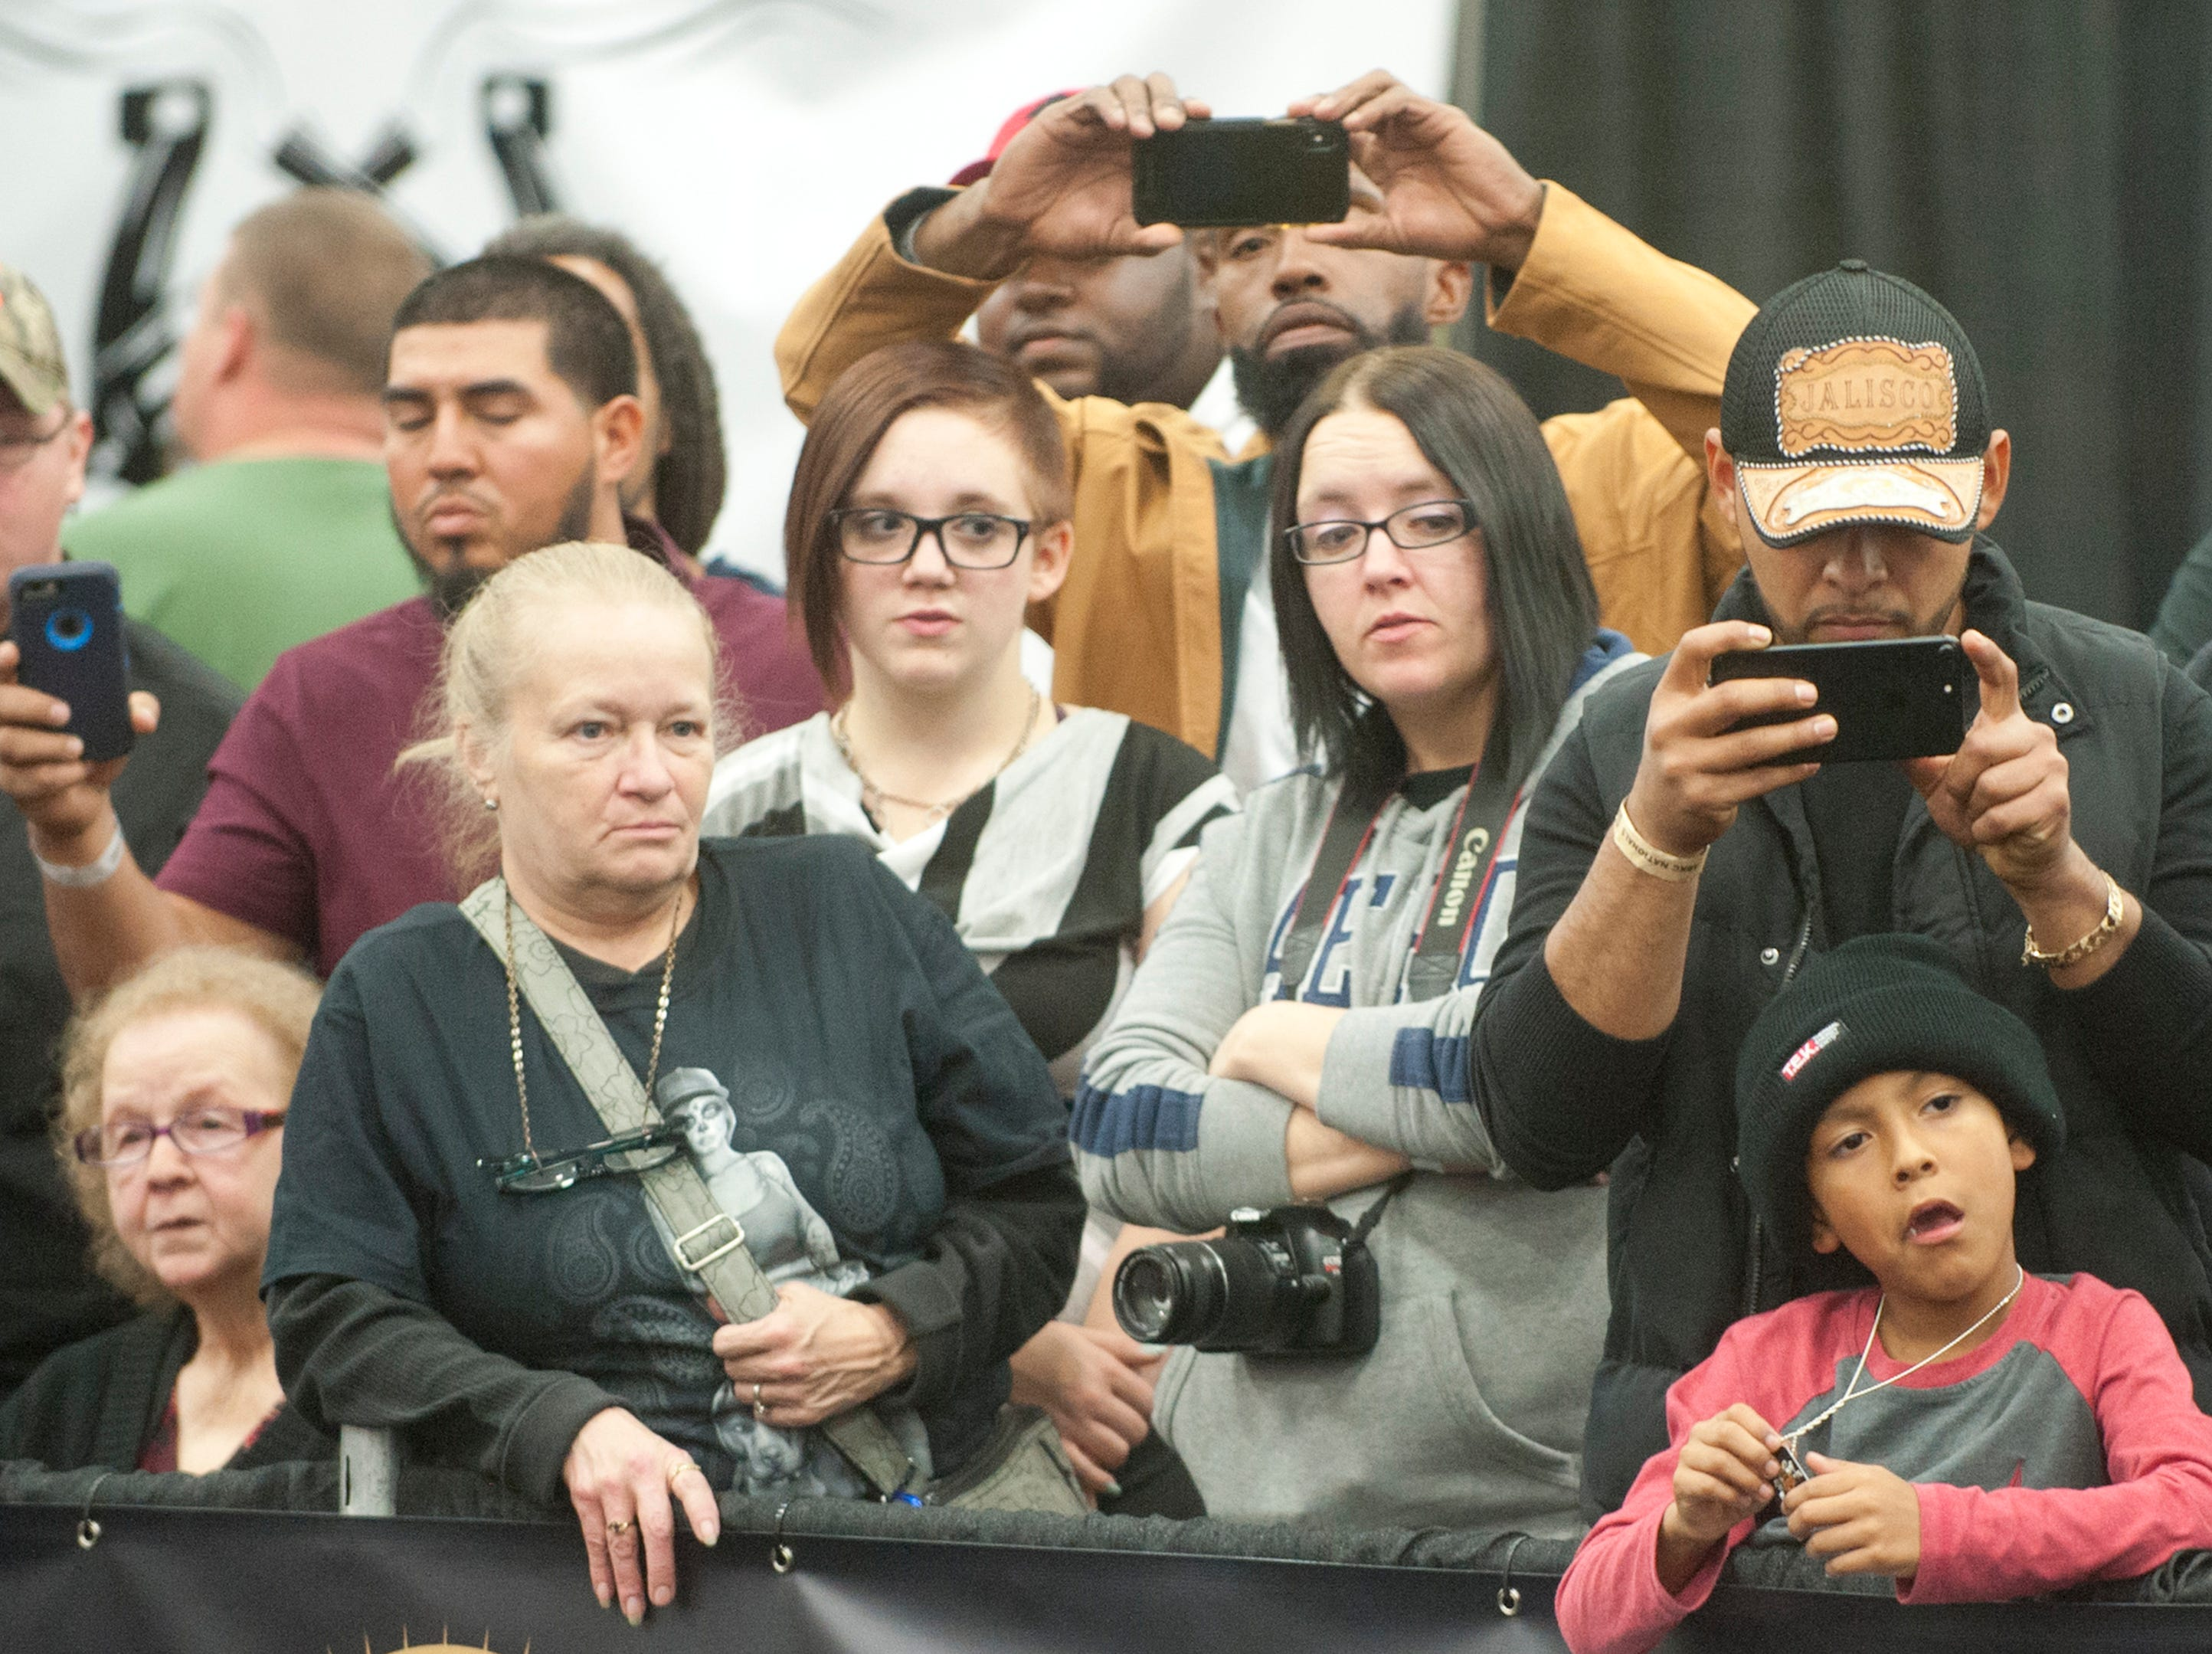 Fans watch and photograph the judging at the 2018 American Bully Kennel Club's 12th annual confirmation event at the Kentucky Convention Center in Louisville.November 10, 2018